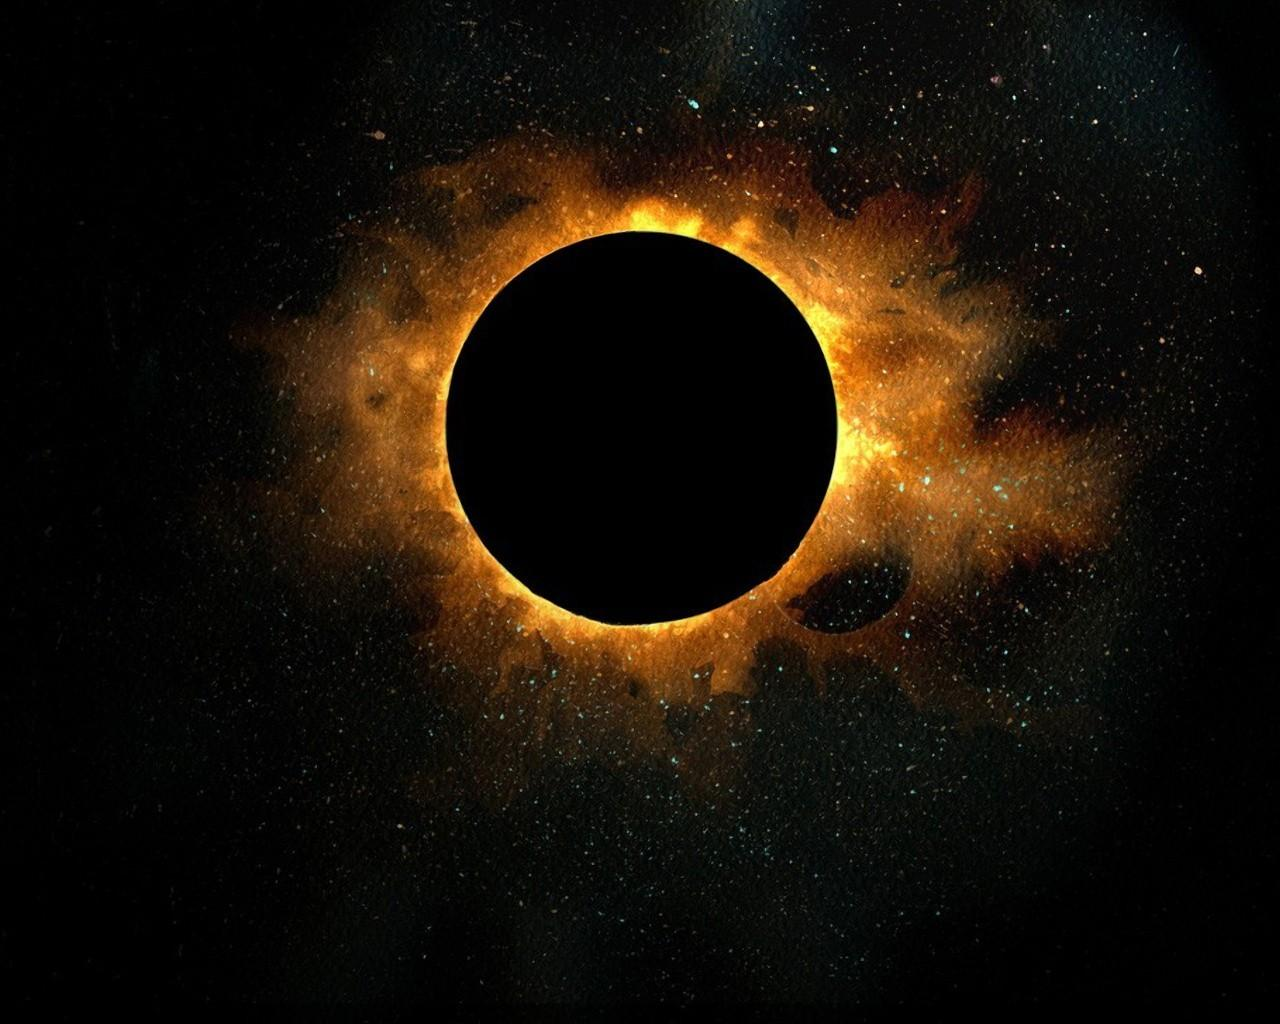 eclipse, sun, dark, outer space